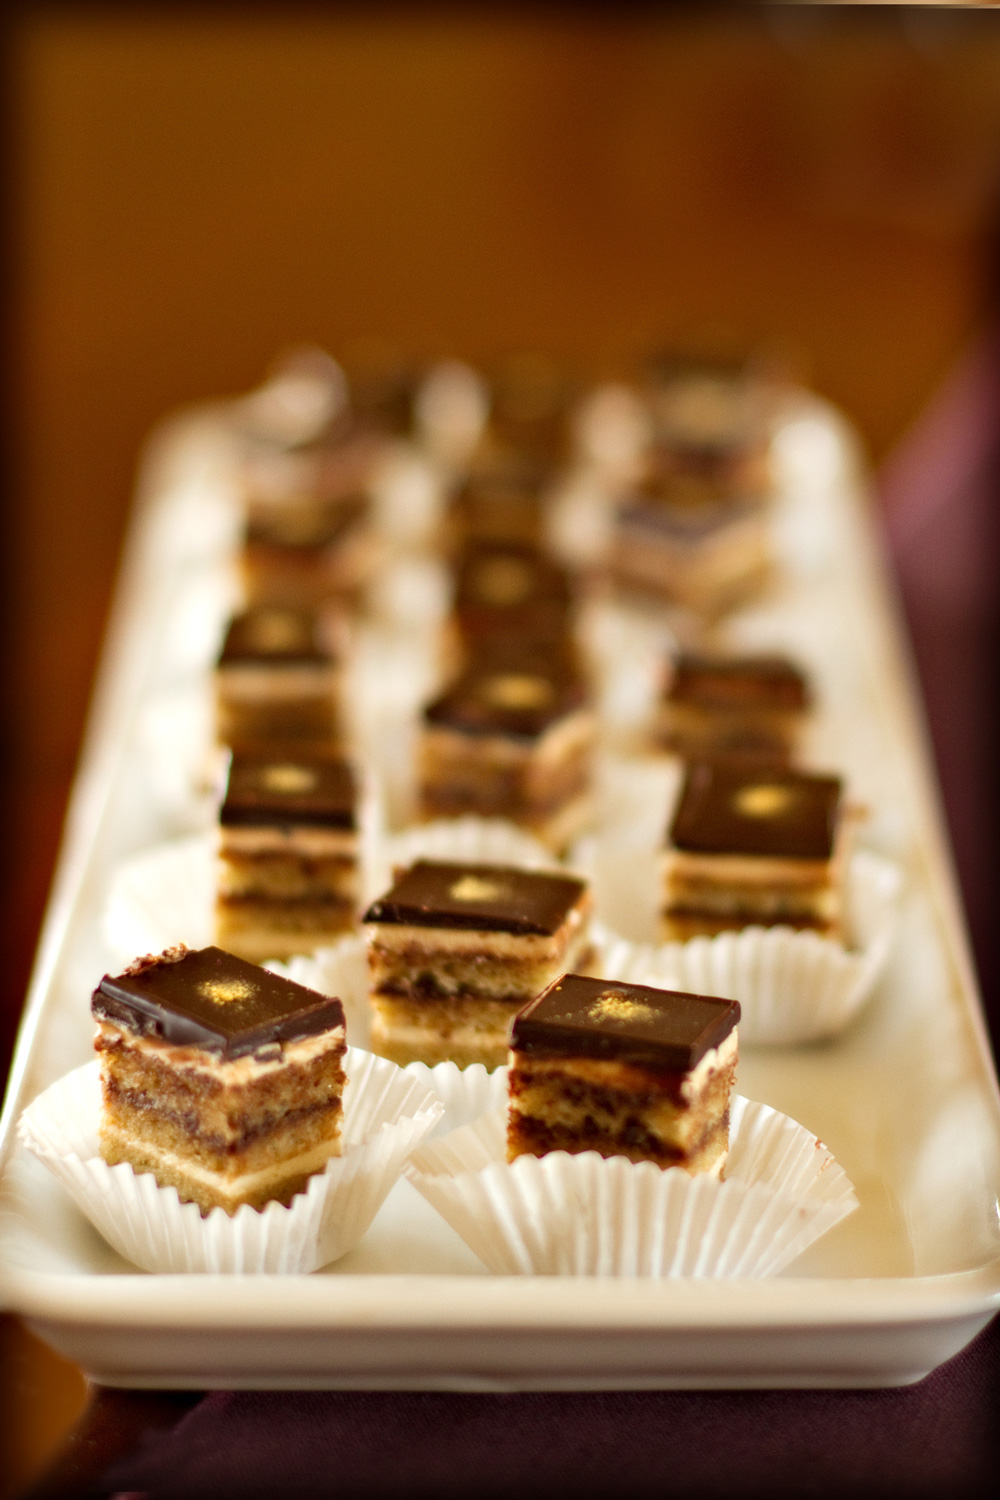 patisserie_angelica_dessert_display_1.jpg